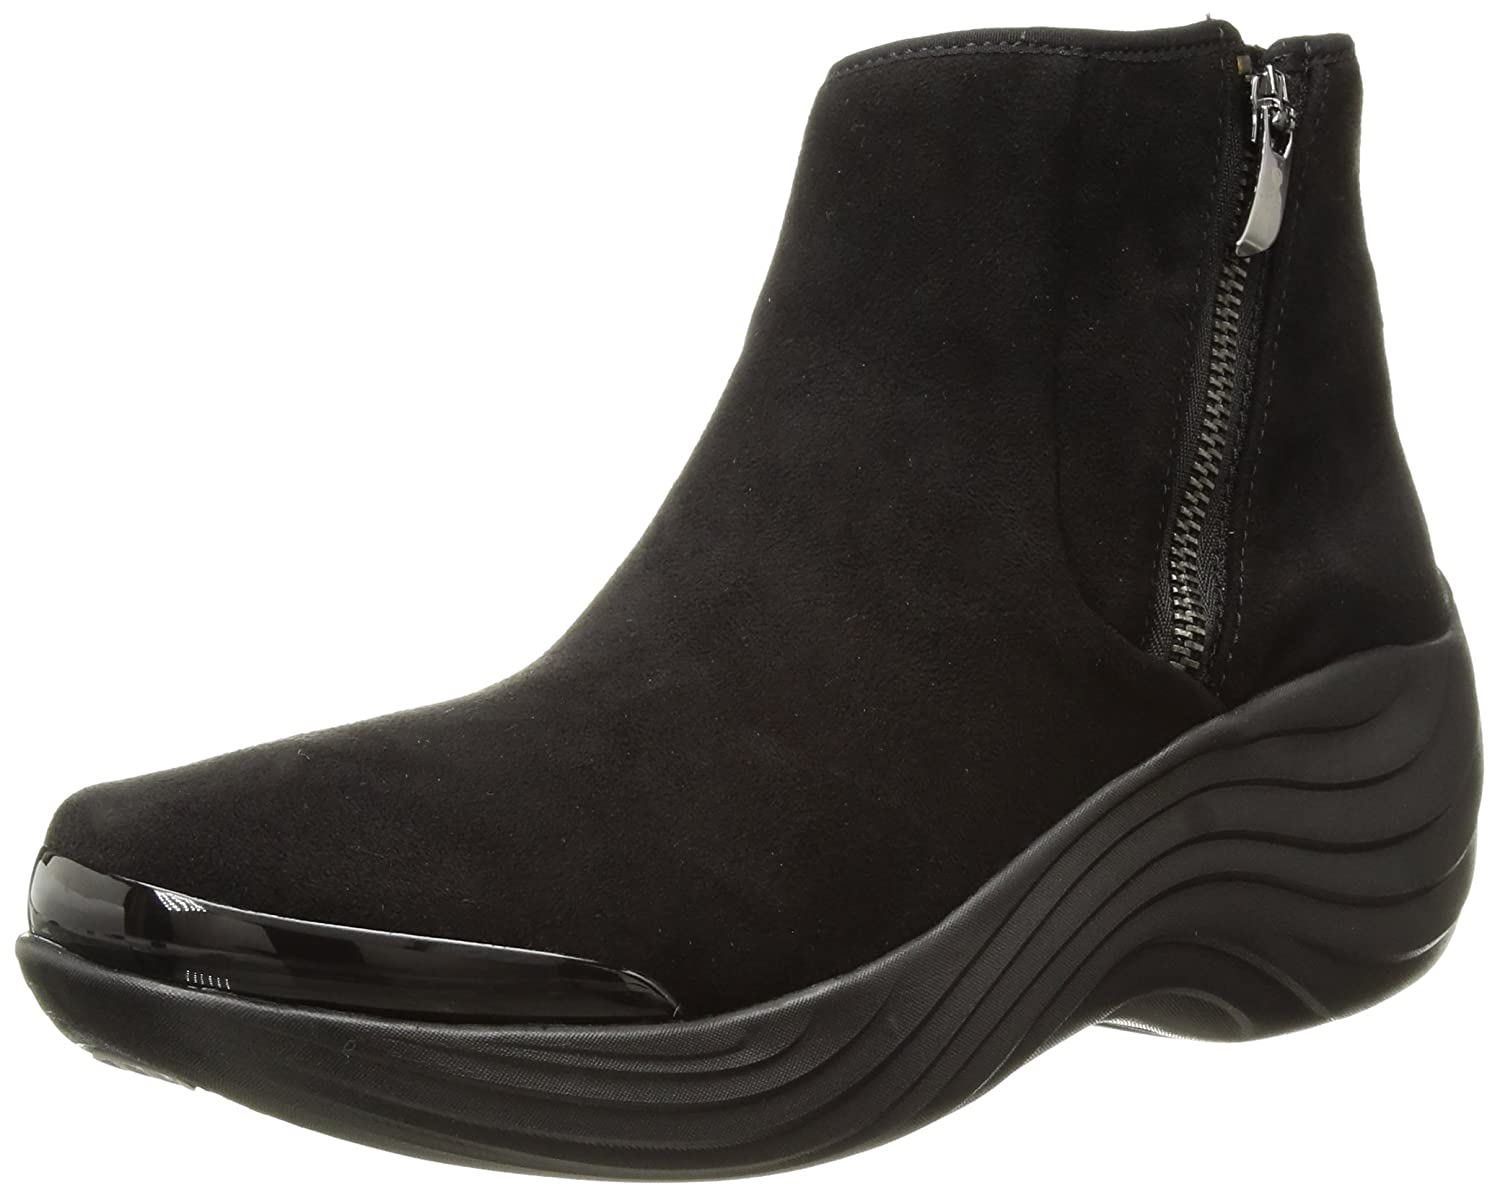 BZees Women's Zora Ankle Boot B076D81HYG 11 M US|Black 1